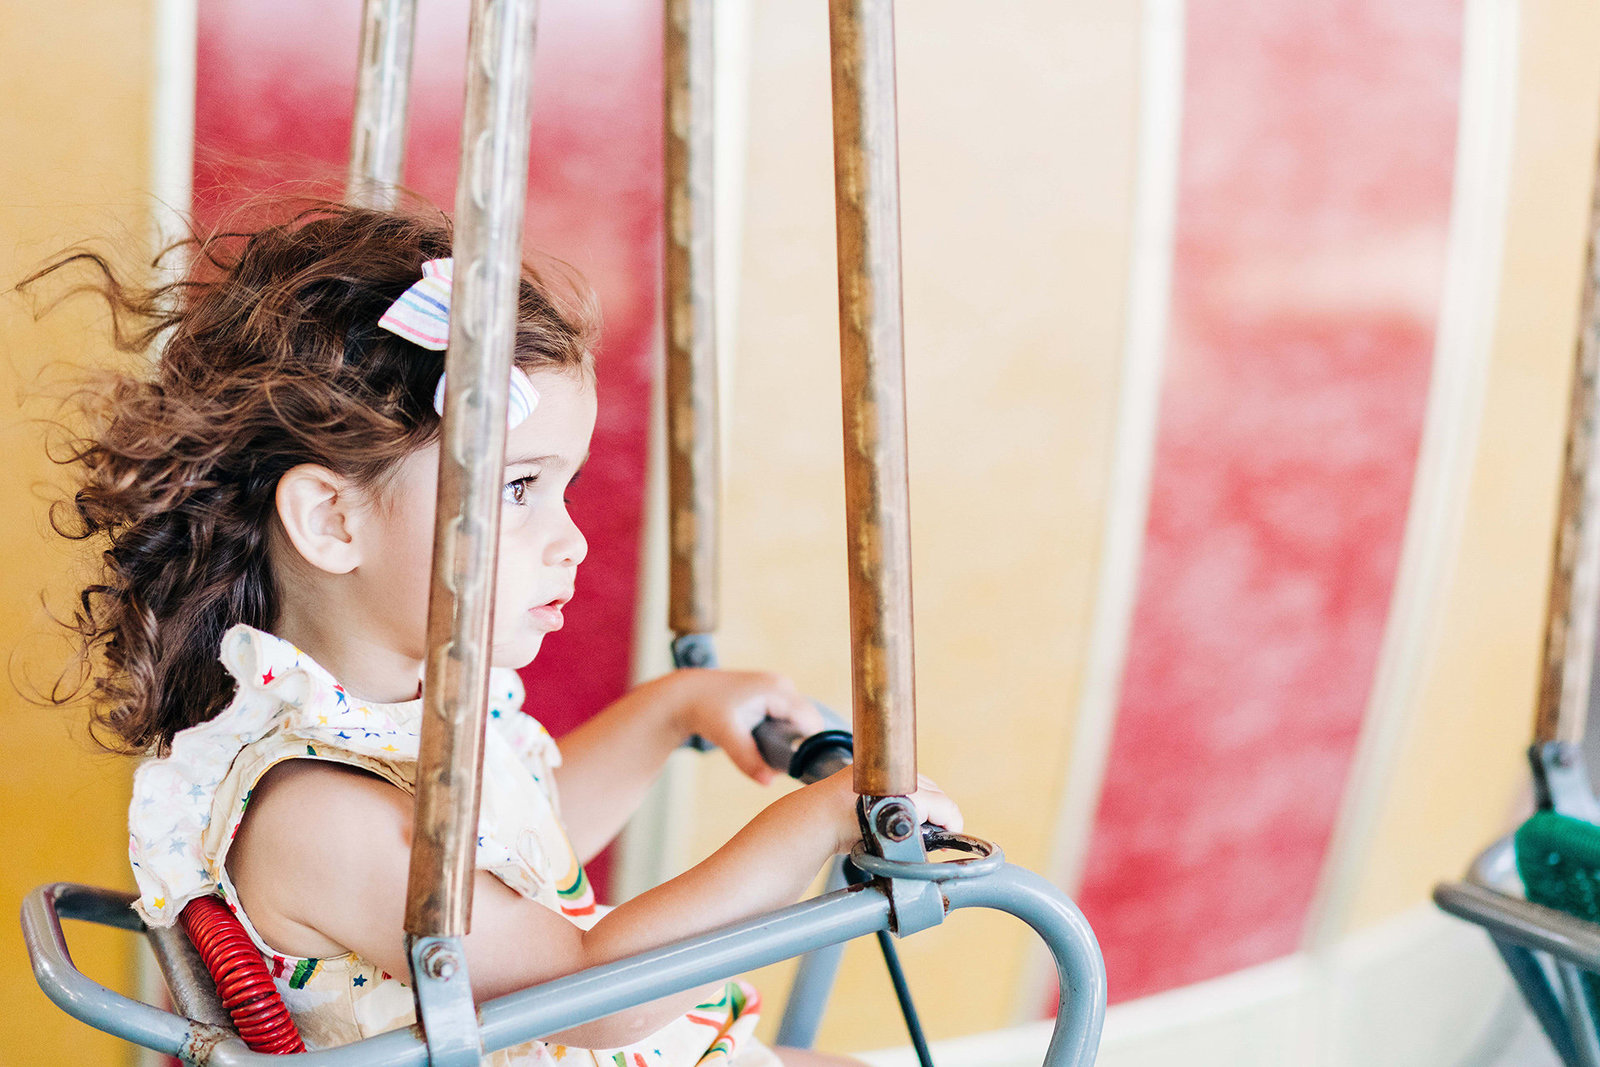 Little girl at an amusement park